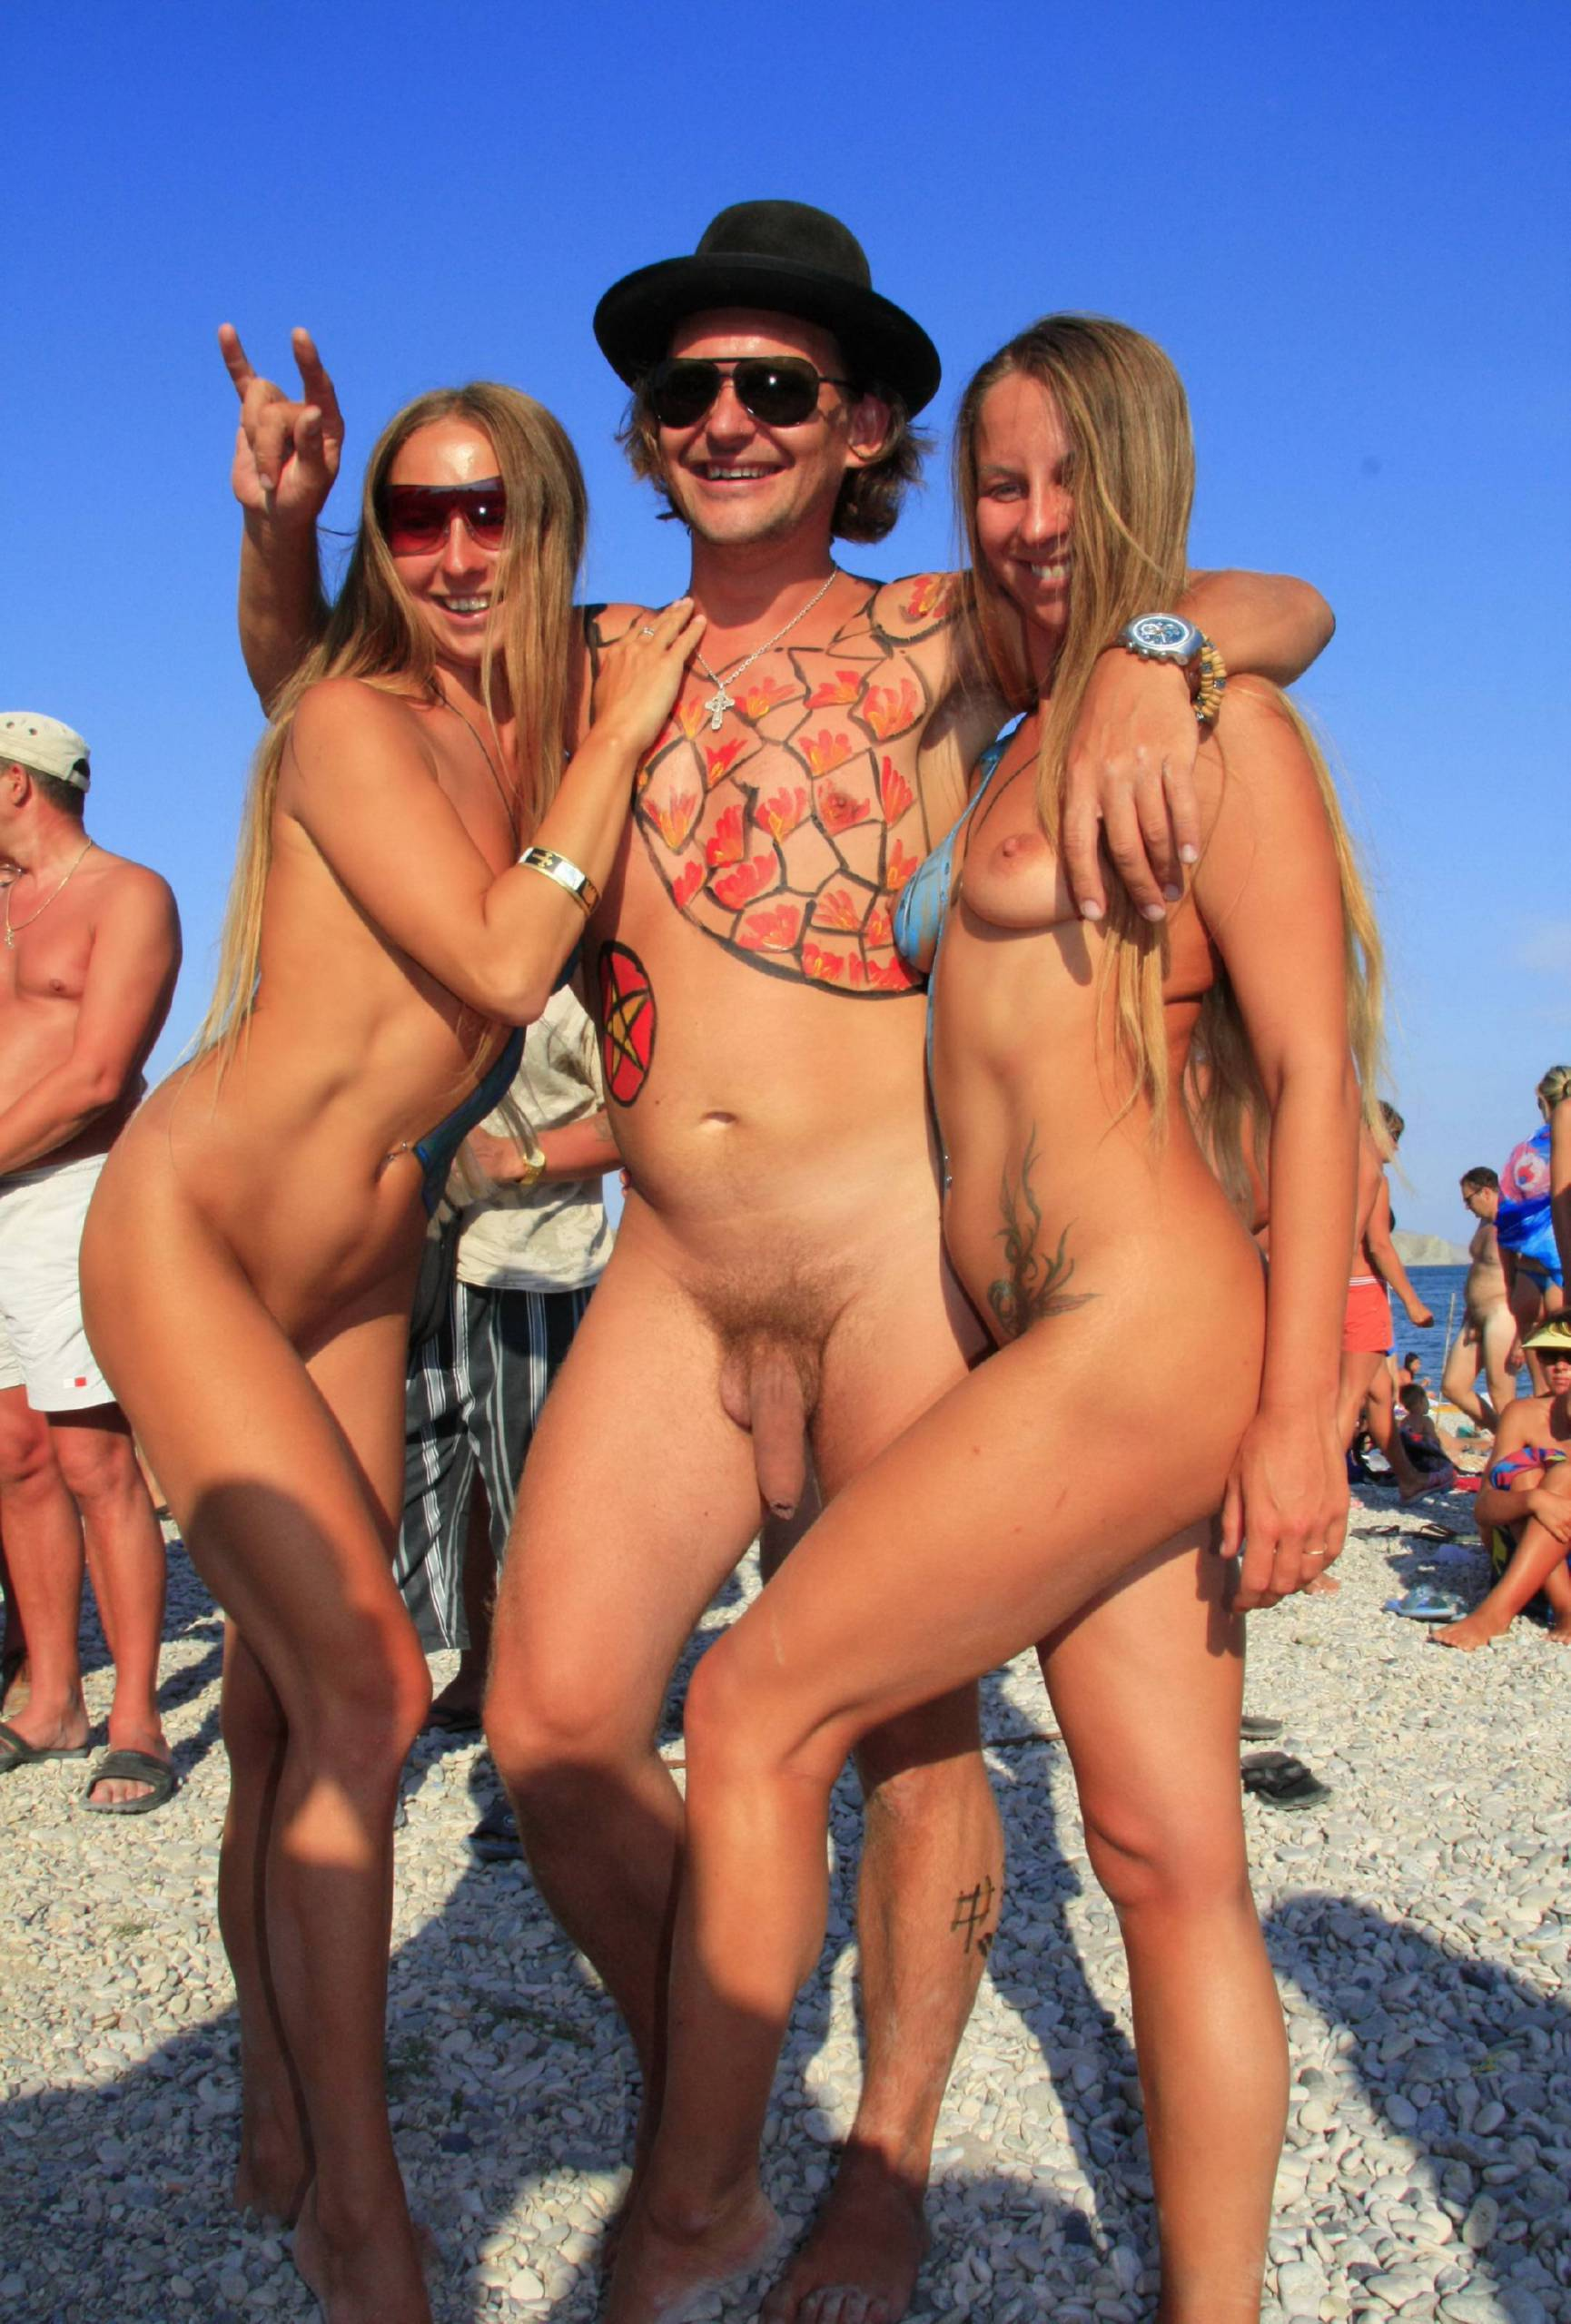 Pure Nudism Images Mountain-Top Air Shots - 2